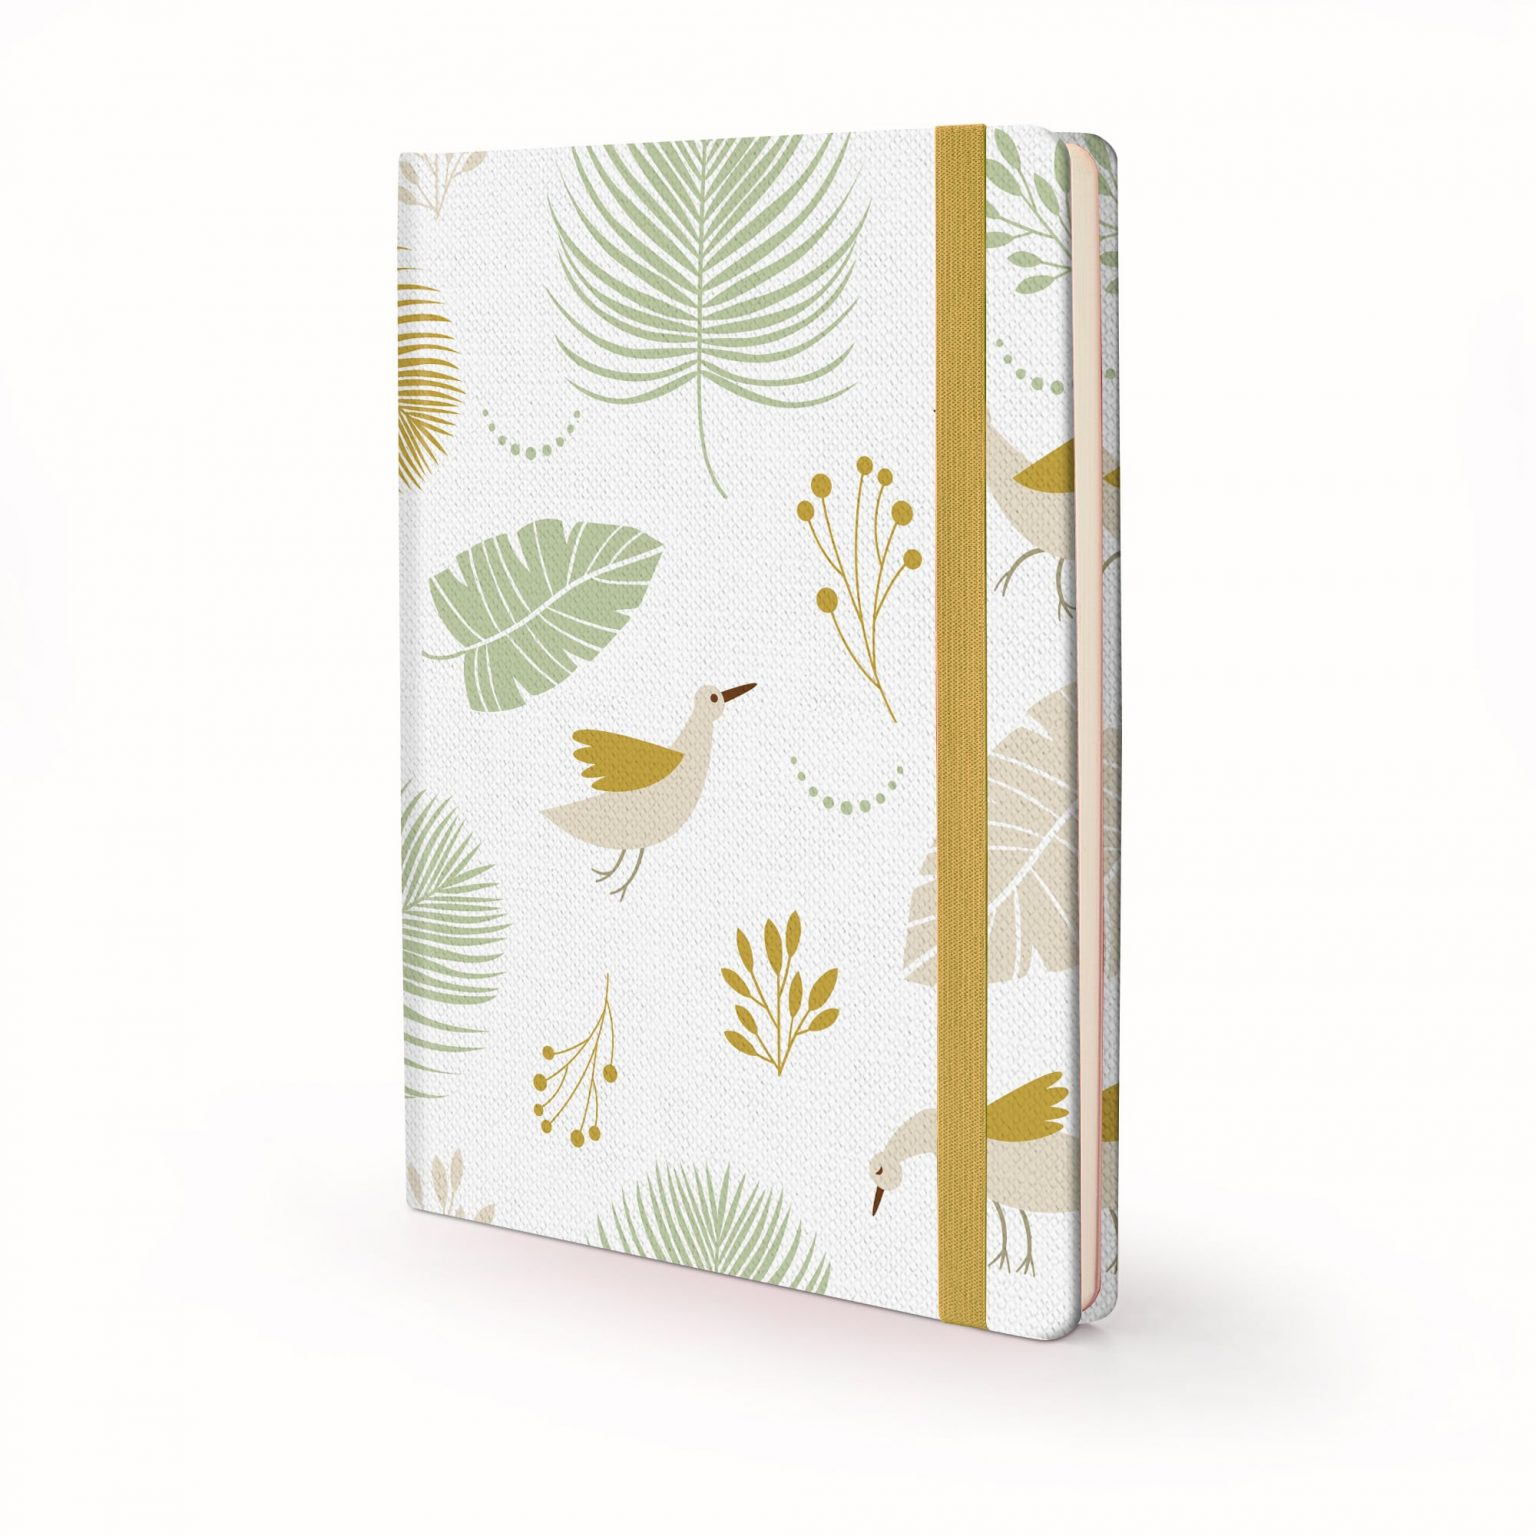 Image shows a Nature Birds Hardcover journal